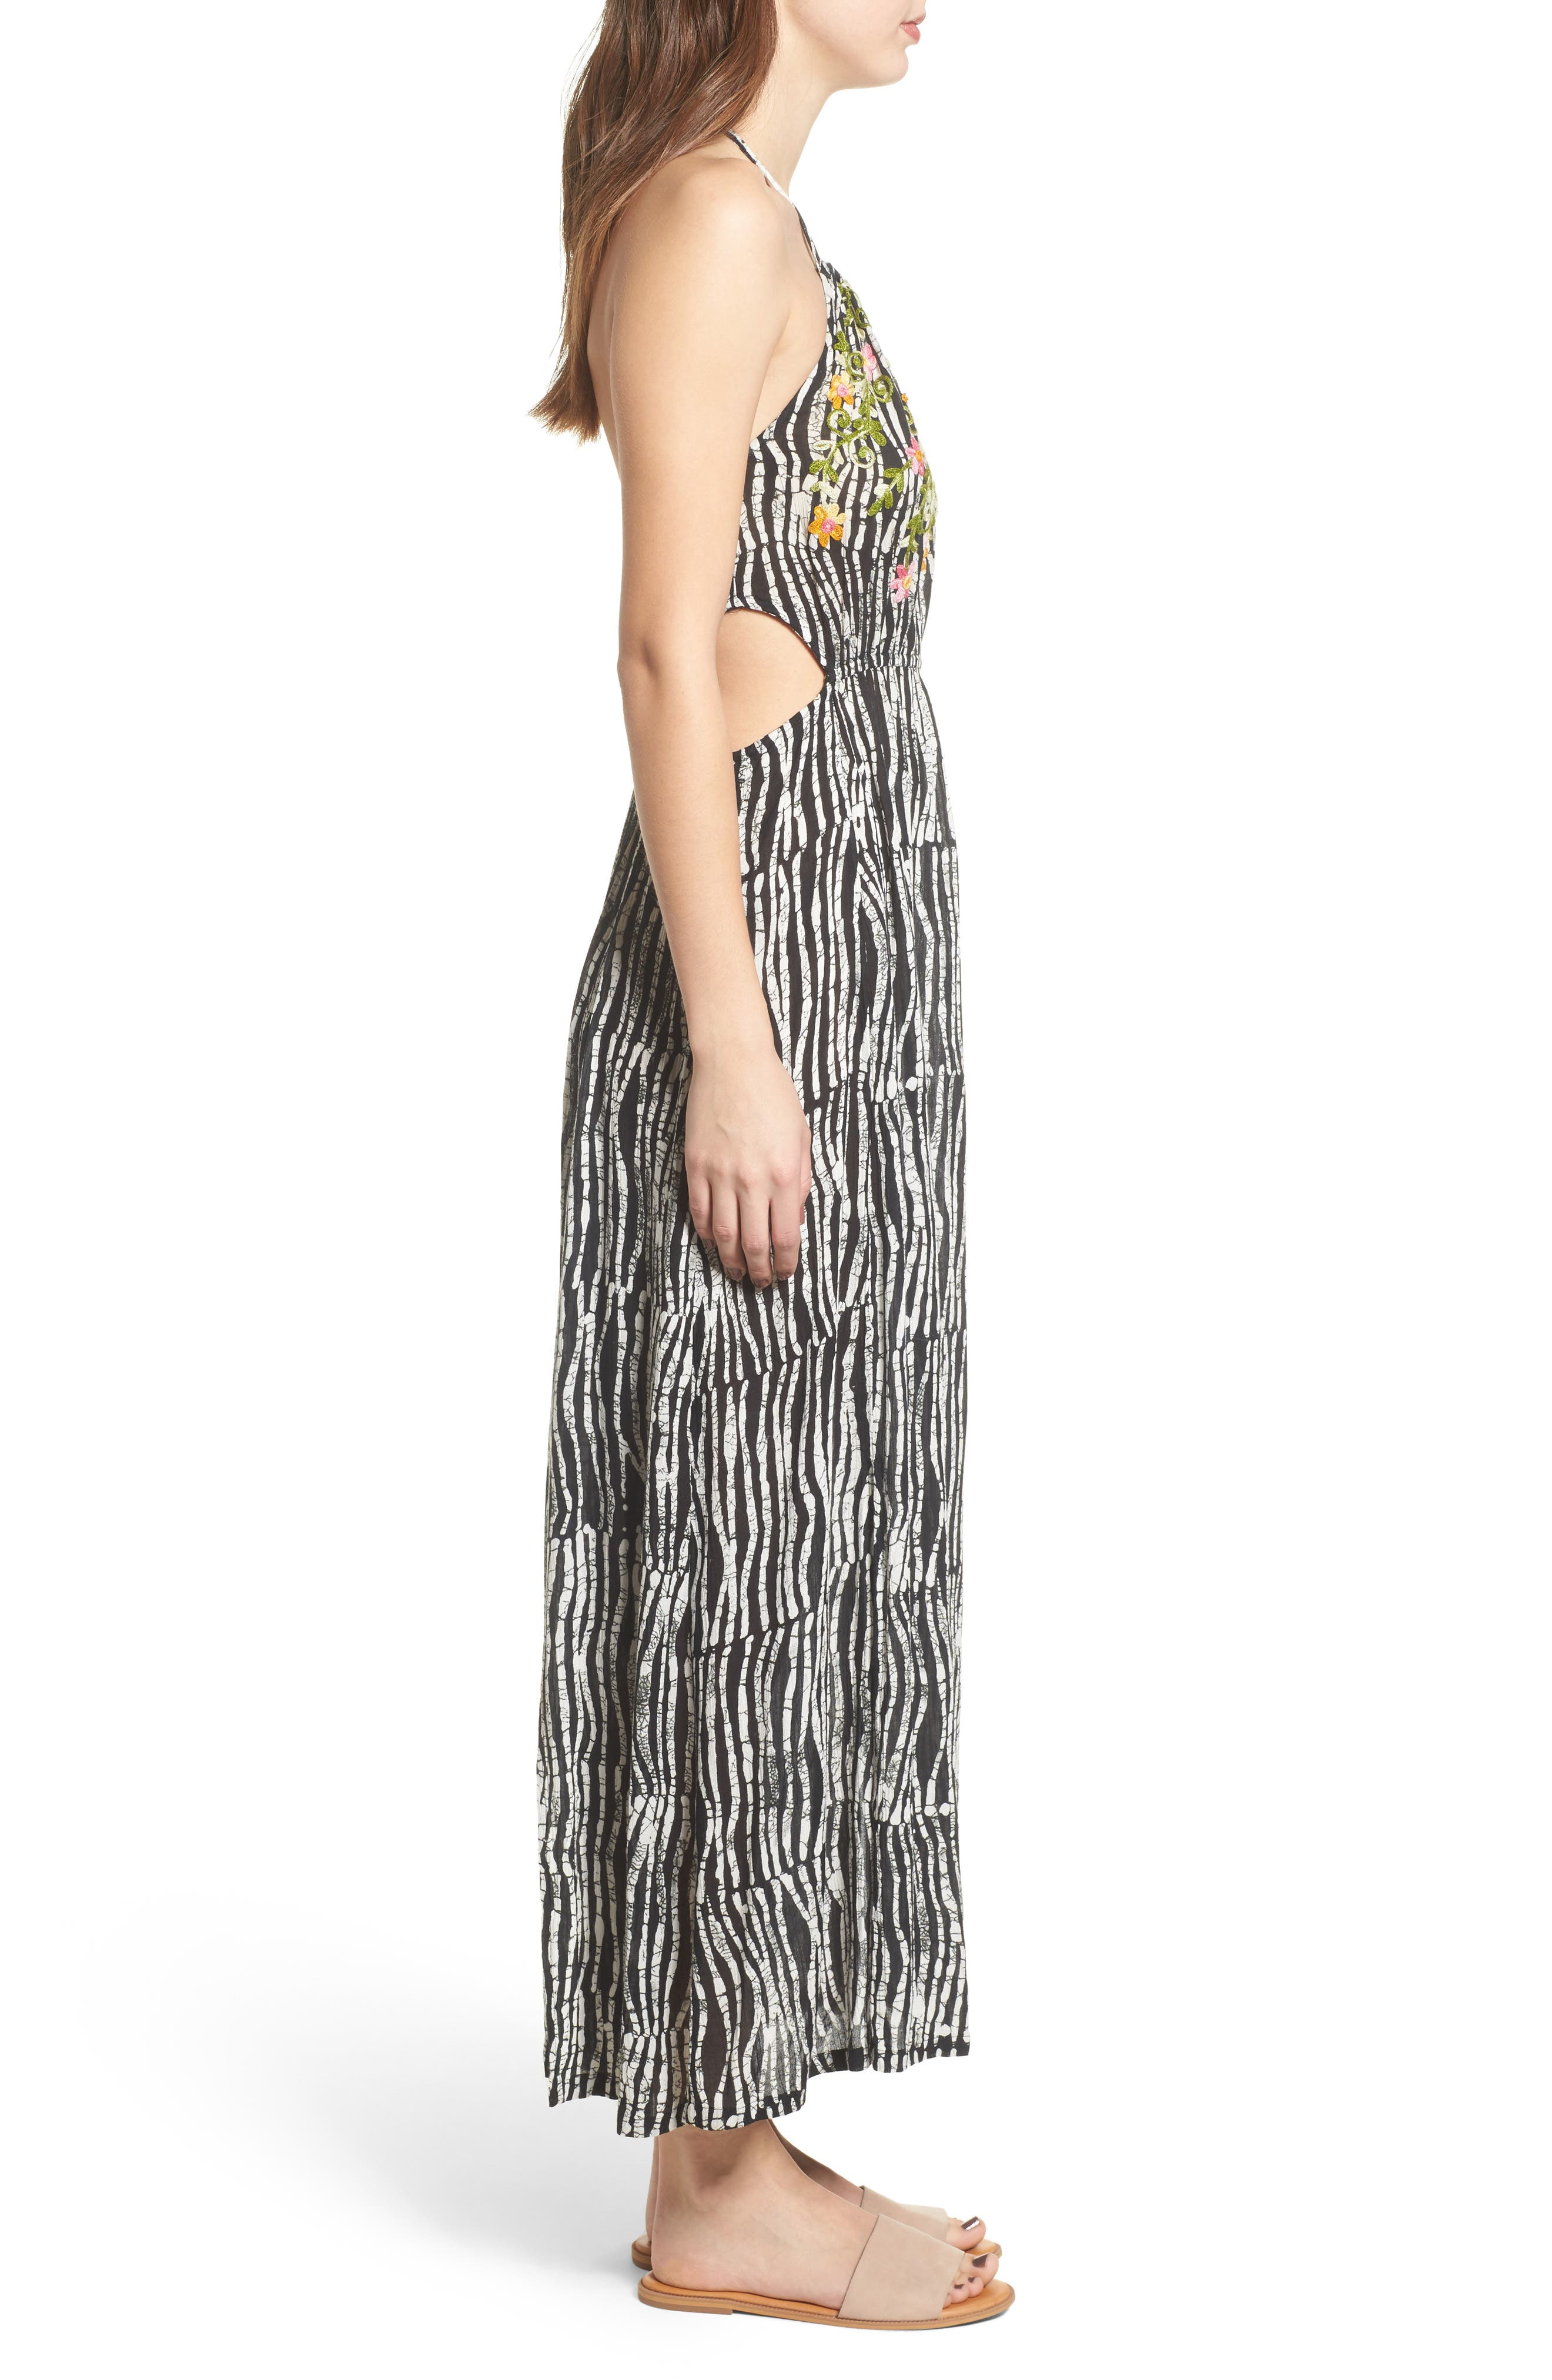 Before Dawn Embroidered Maxi Dress,                             Alternate thumbnail 3, color,                             002